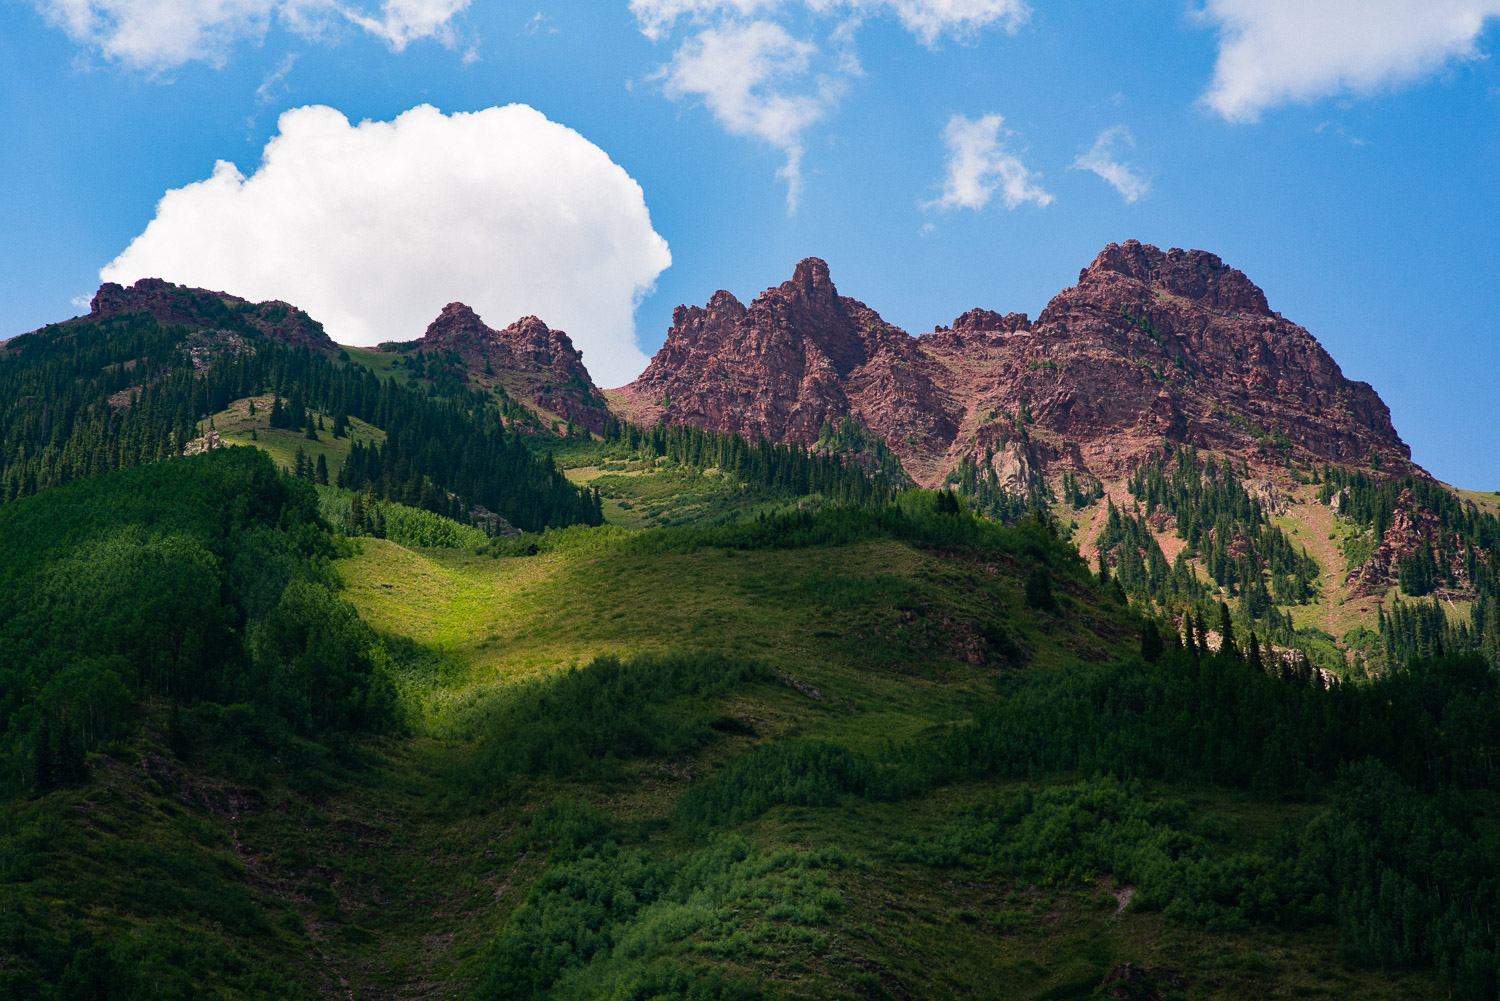 Trippy geography around the Maroon Bells. At this elevation the clouds appear to move much faster than usual, if you just sit and stare at the changing light on the mountains, it's as satisfying as your favorite movie.